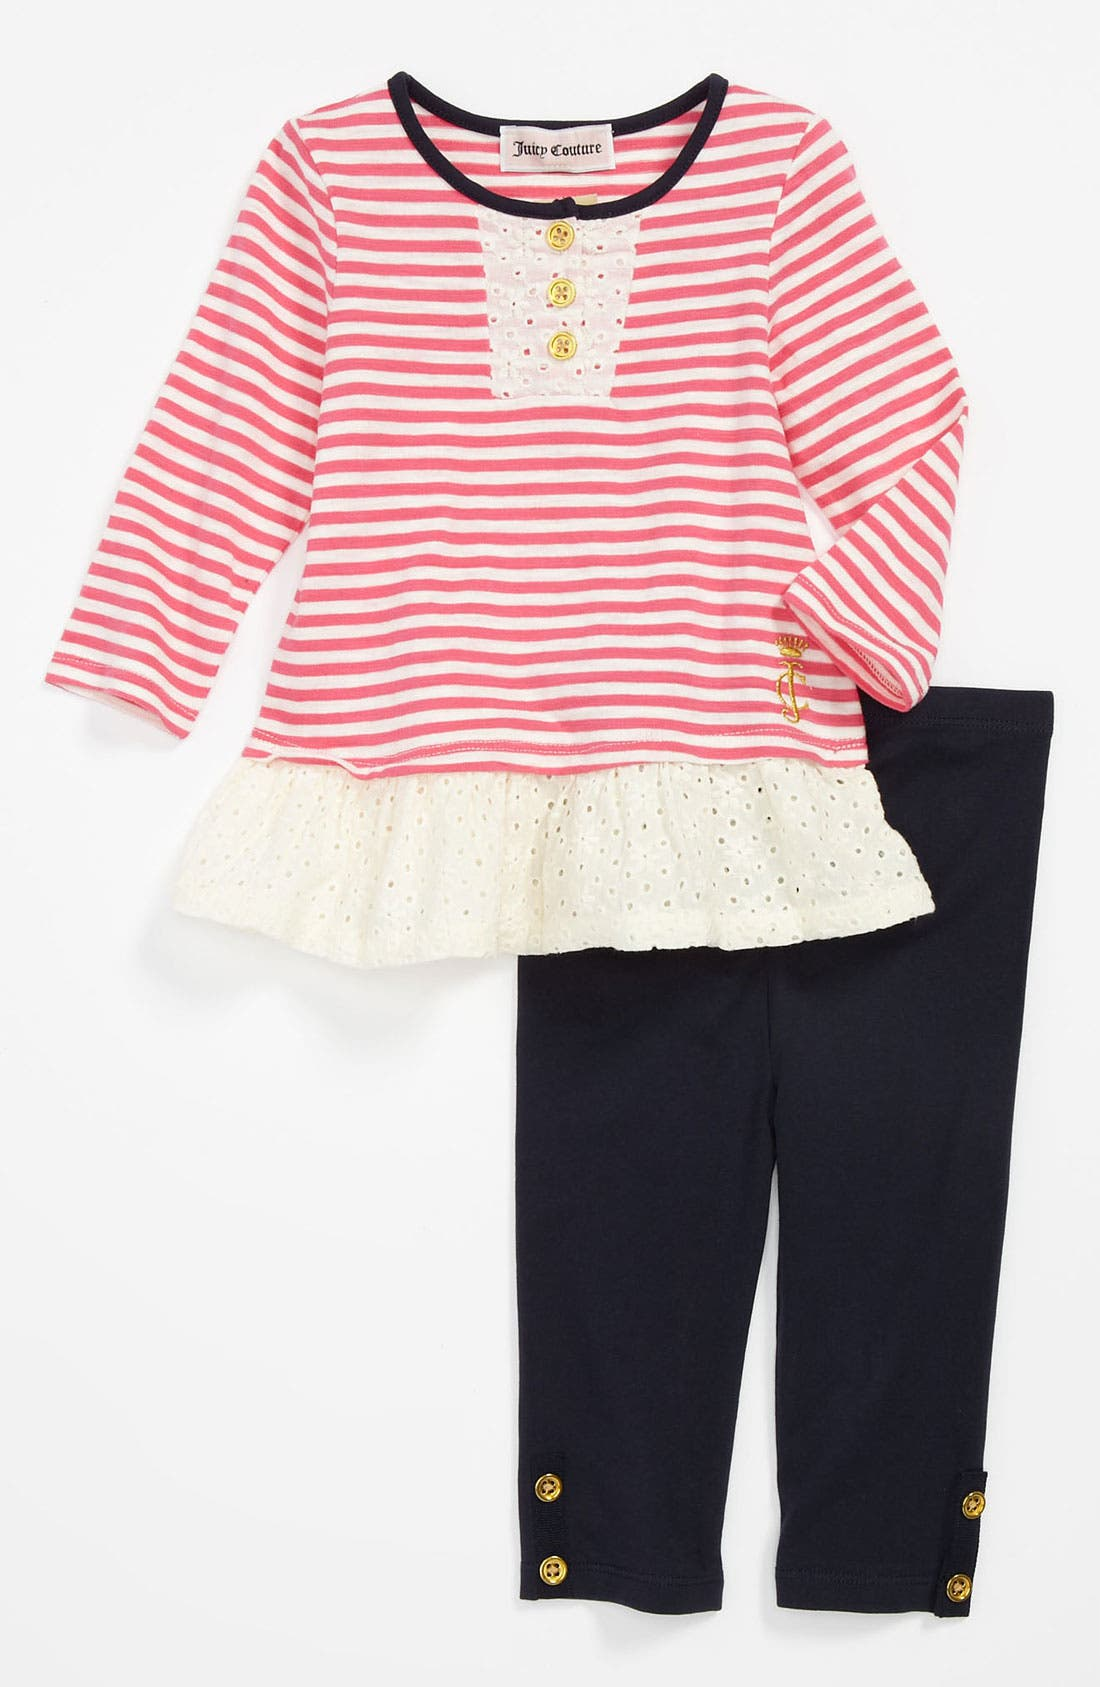 Main Image - Juicy Couture Stripe Tunic & Leggings (Infant)